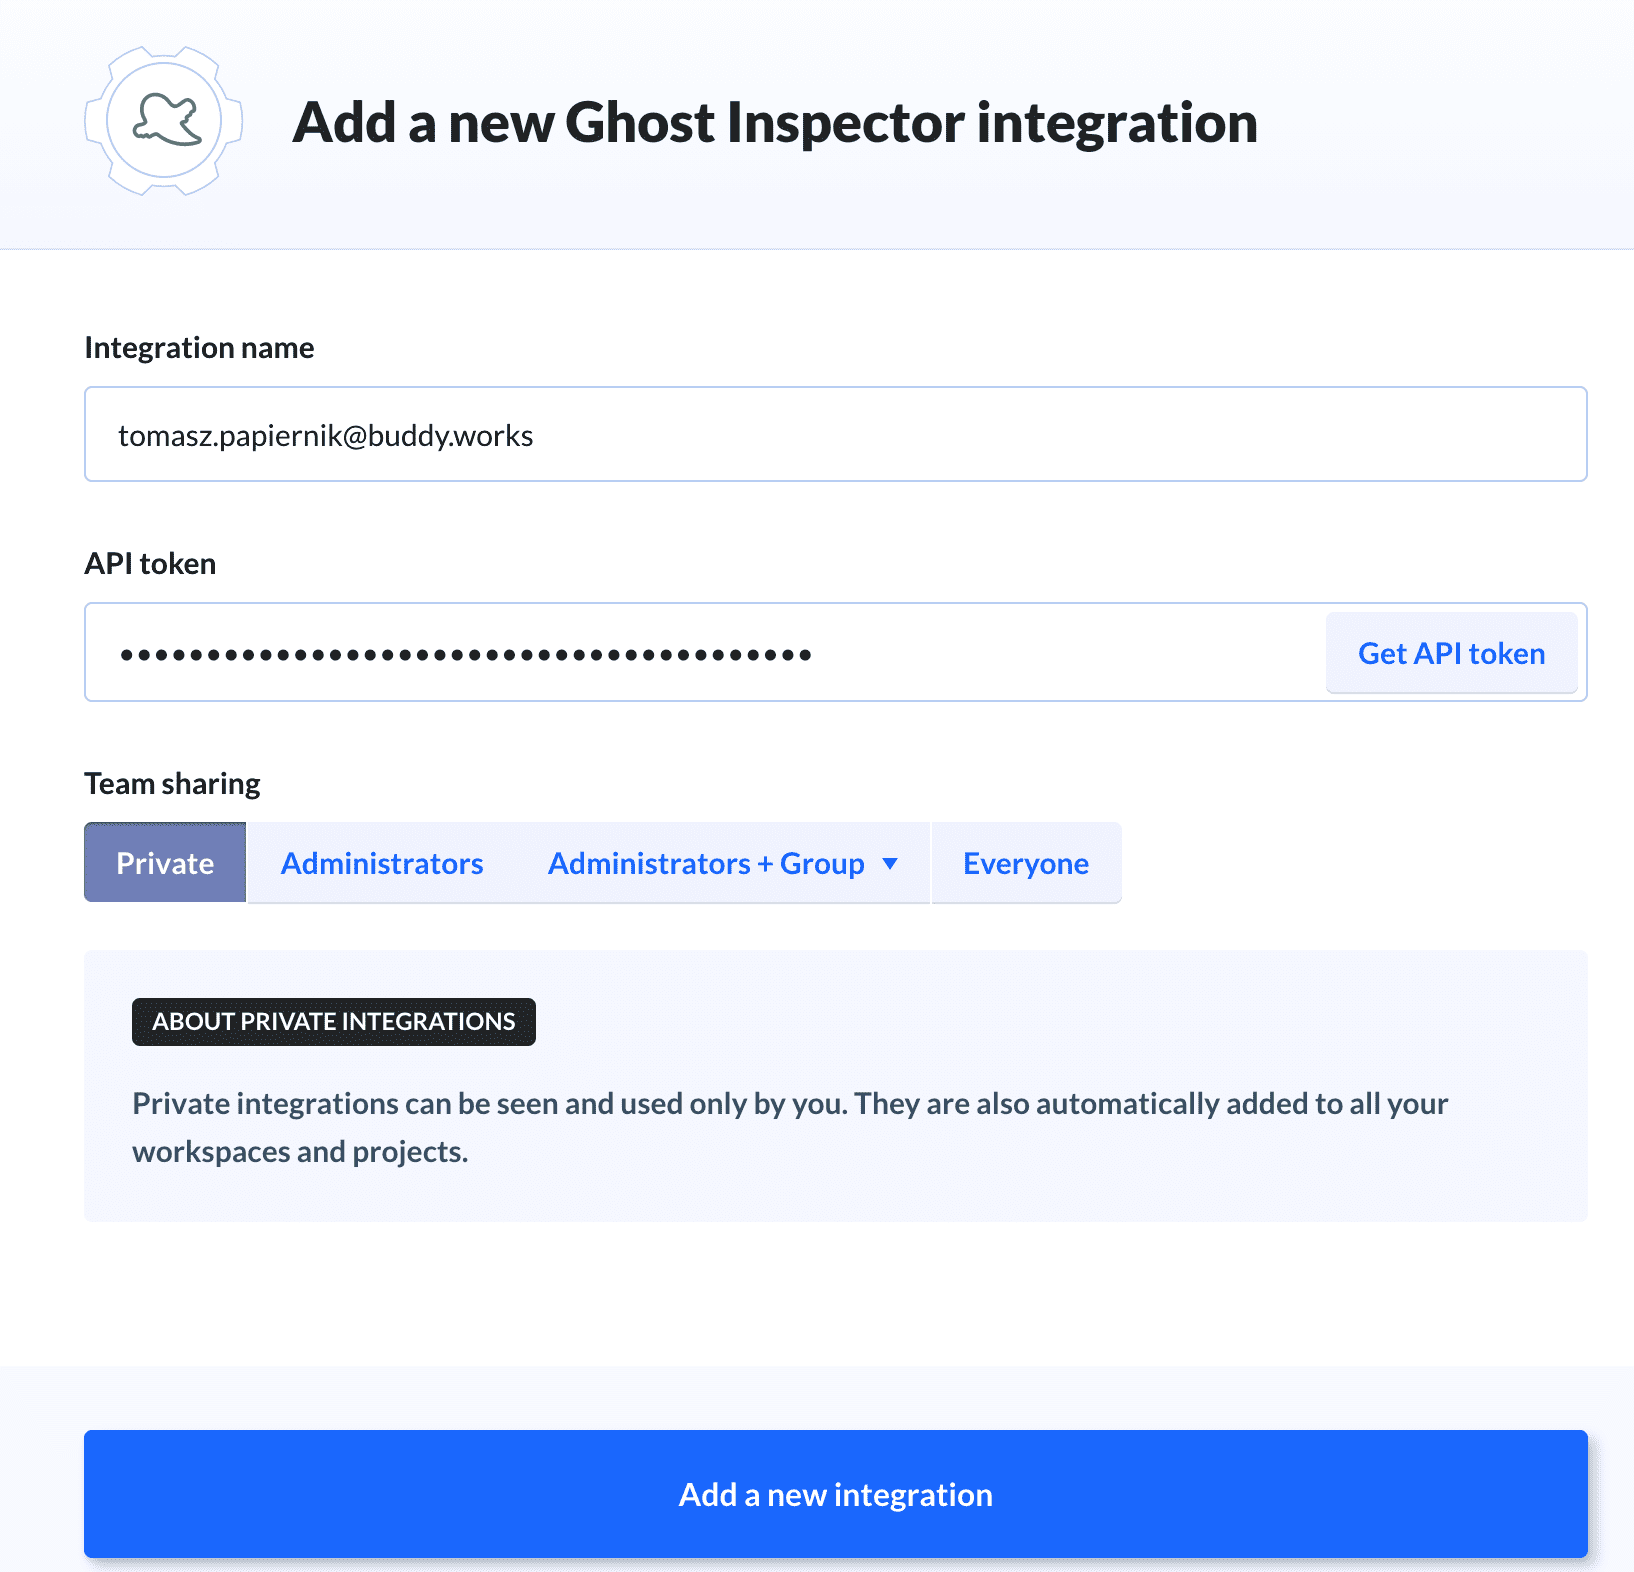 Adding Ghost Inspector integration